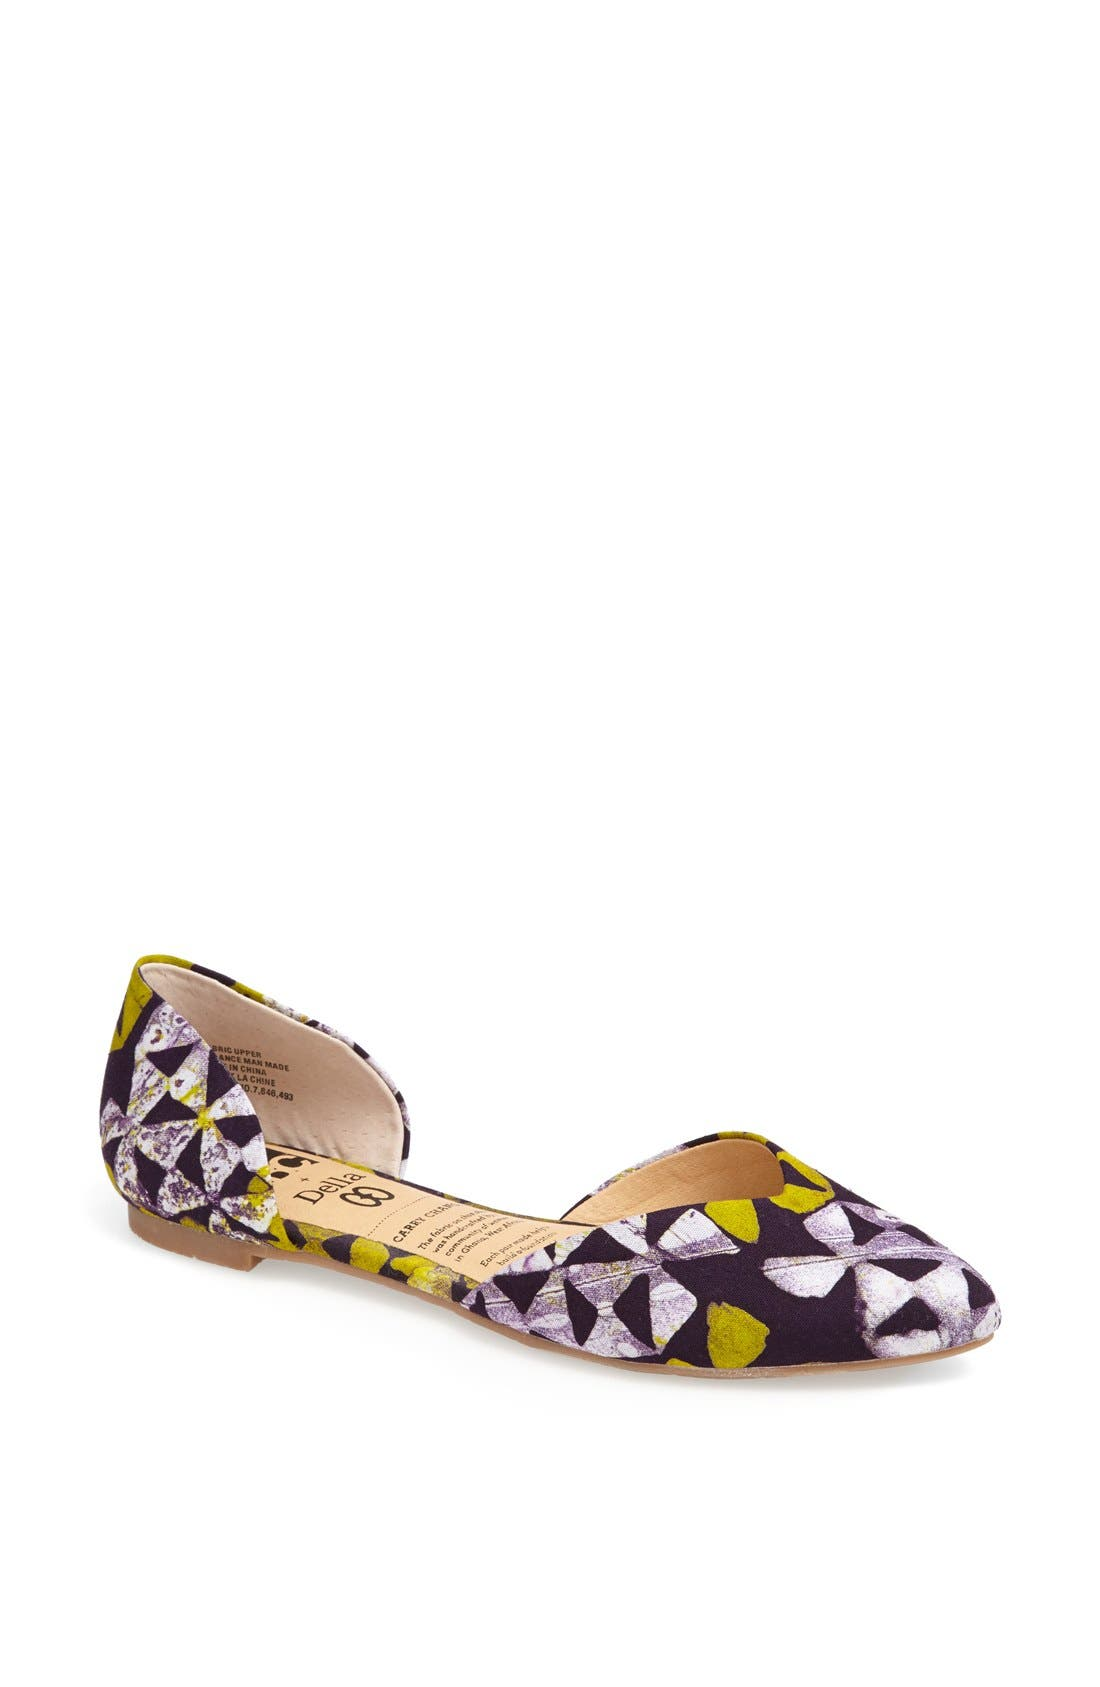 Alternate Image 1 Selected - BC Footwear 'Up All Night' d'Orsay Flat